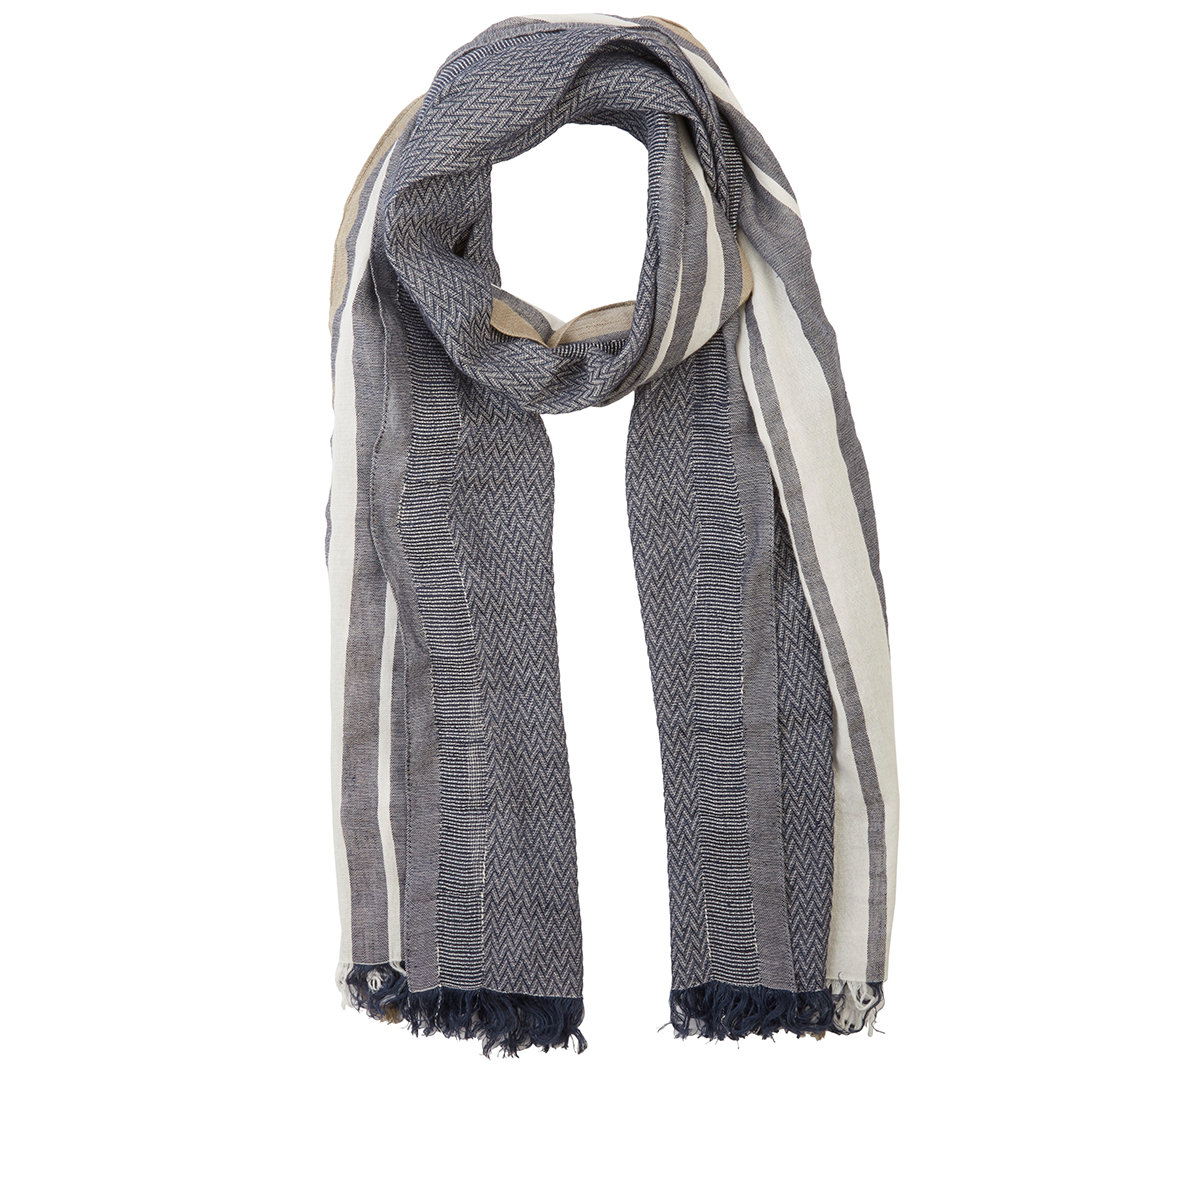 barneys new york s zigzag striped scarf in gray for